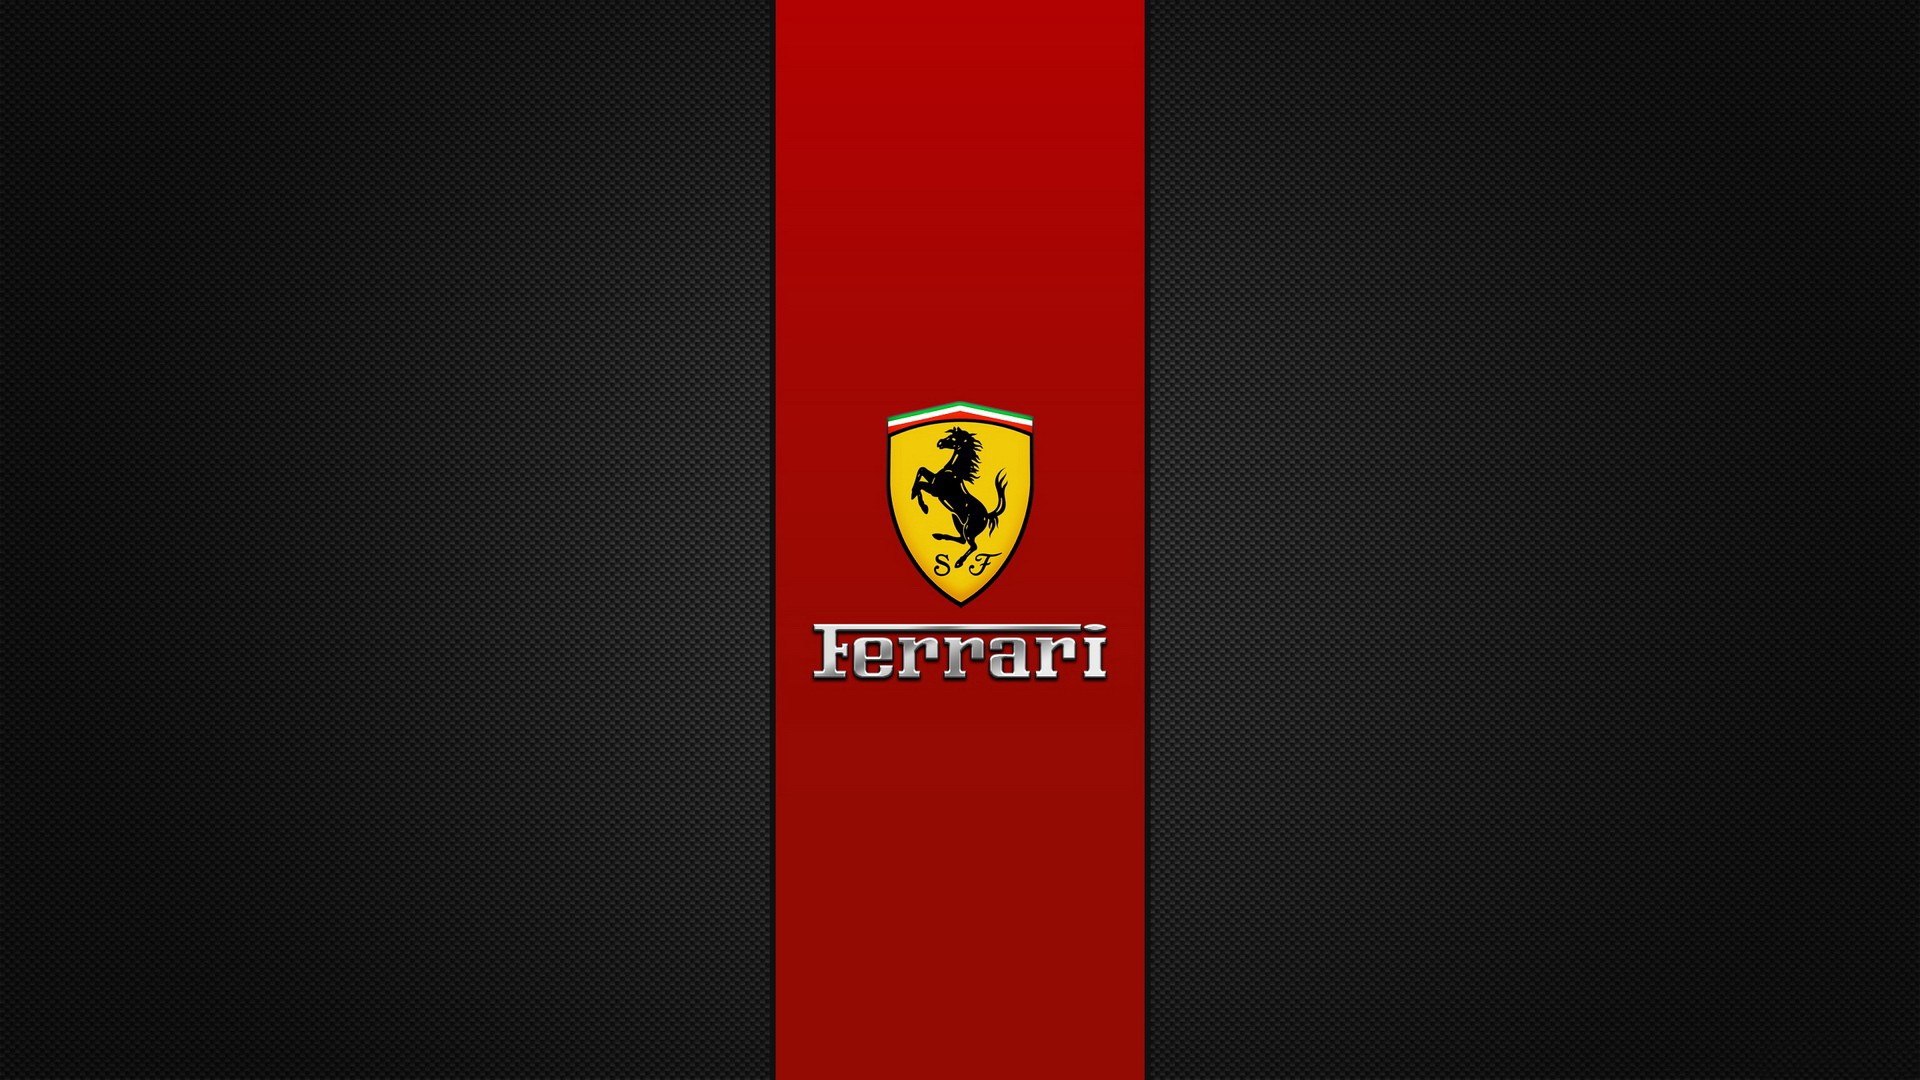 Ferrari Brand Logo - High Definition Wallpapers - HD ...